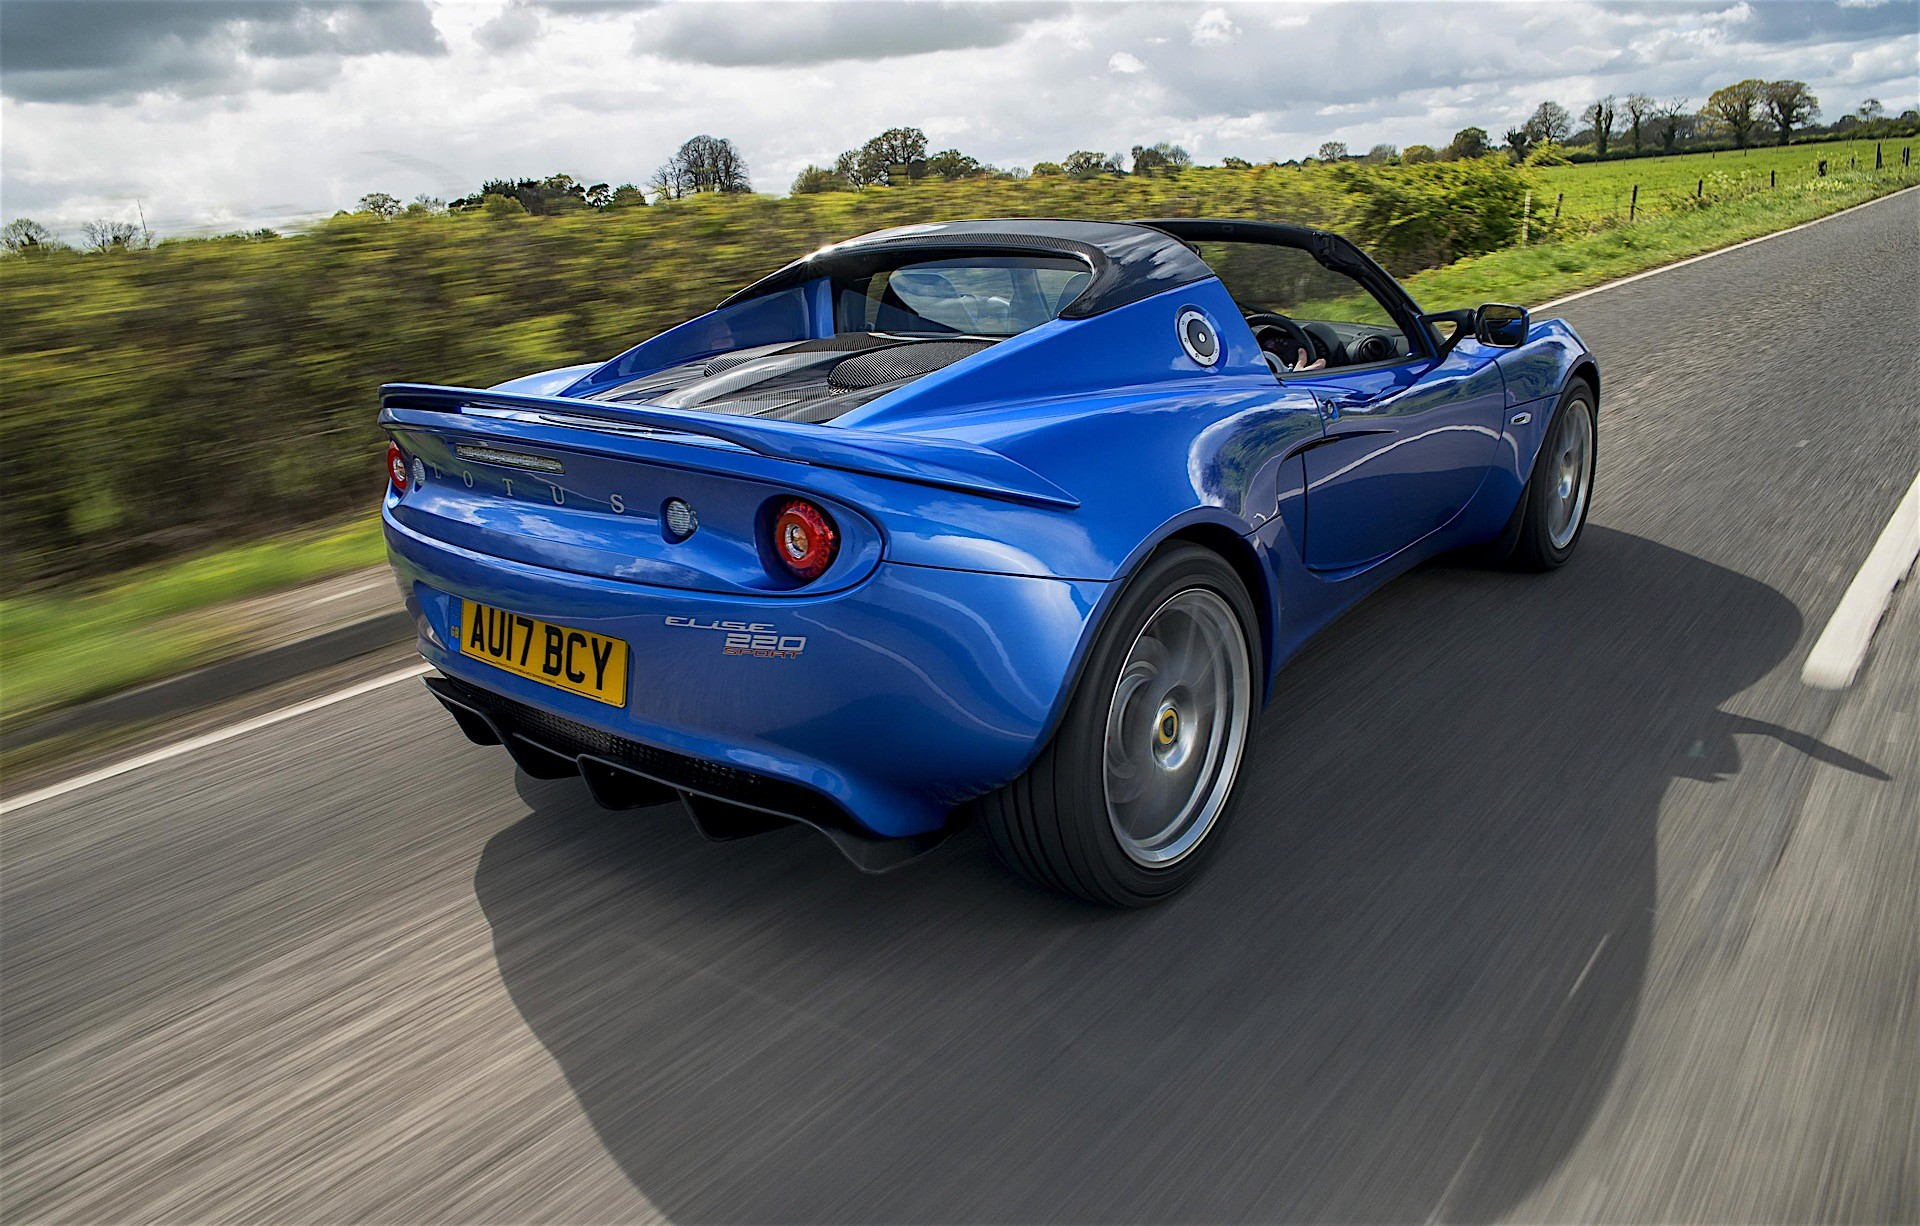 https://s1.cdn.autoevolution.com/images/news/gallery/lotus-elise-named-slowest-depreciating-sports-cars_1.jpg